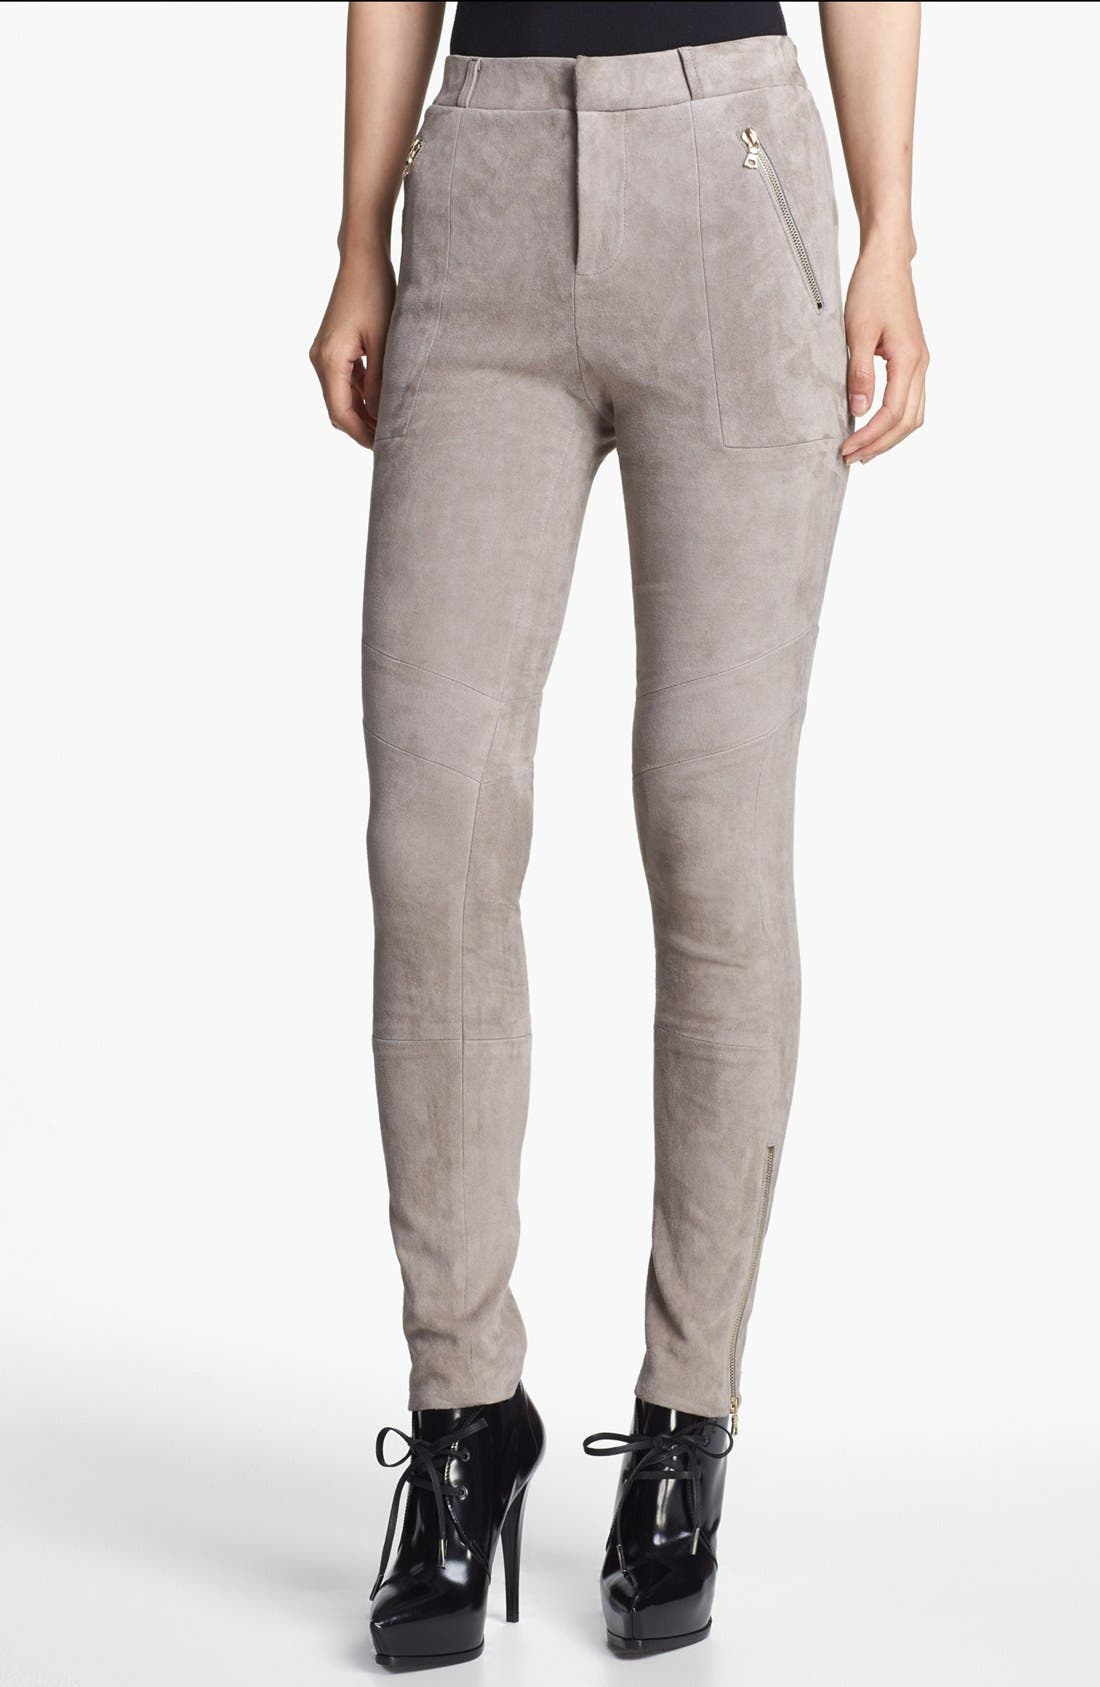 Alternate Image 1 Selected - J Brand Ready-to-Wear 'Astrid' Stretch Suede Pants